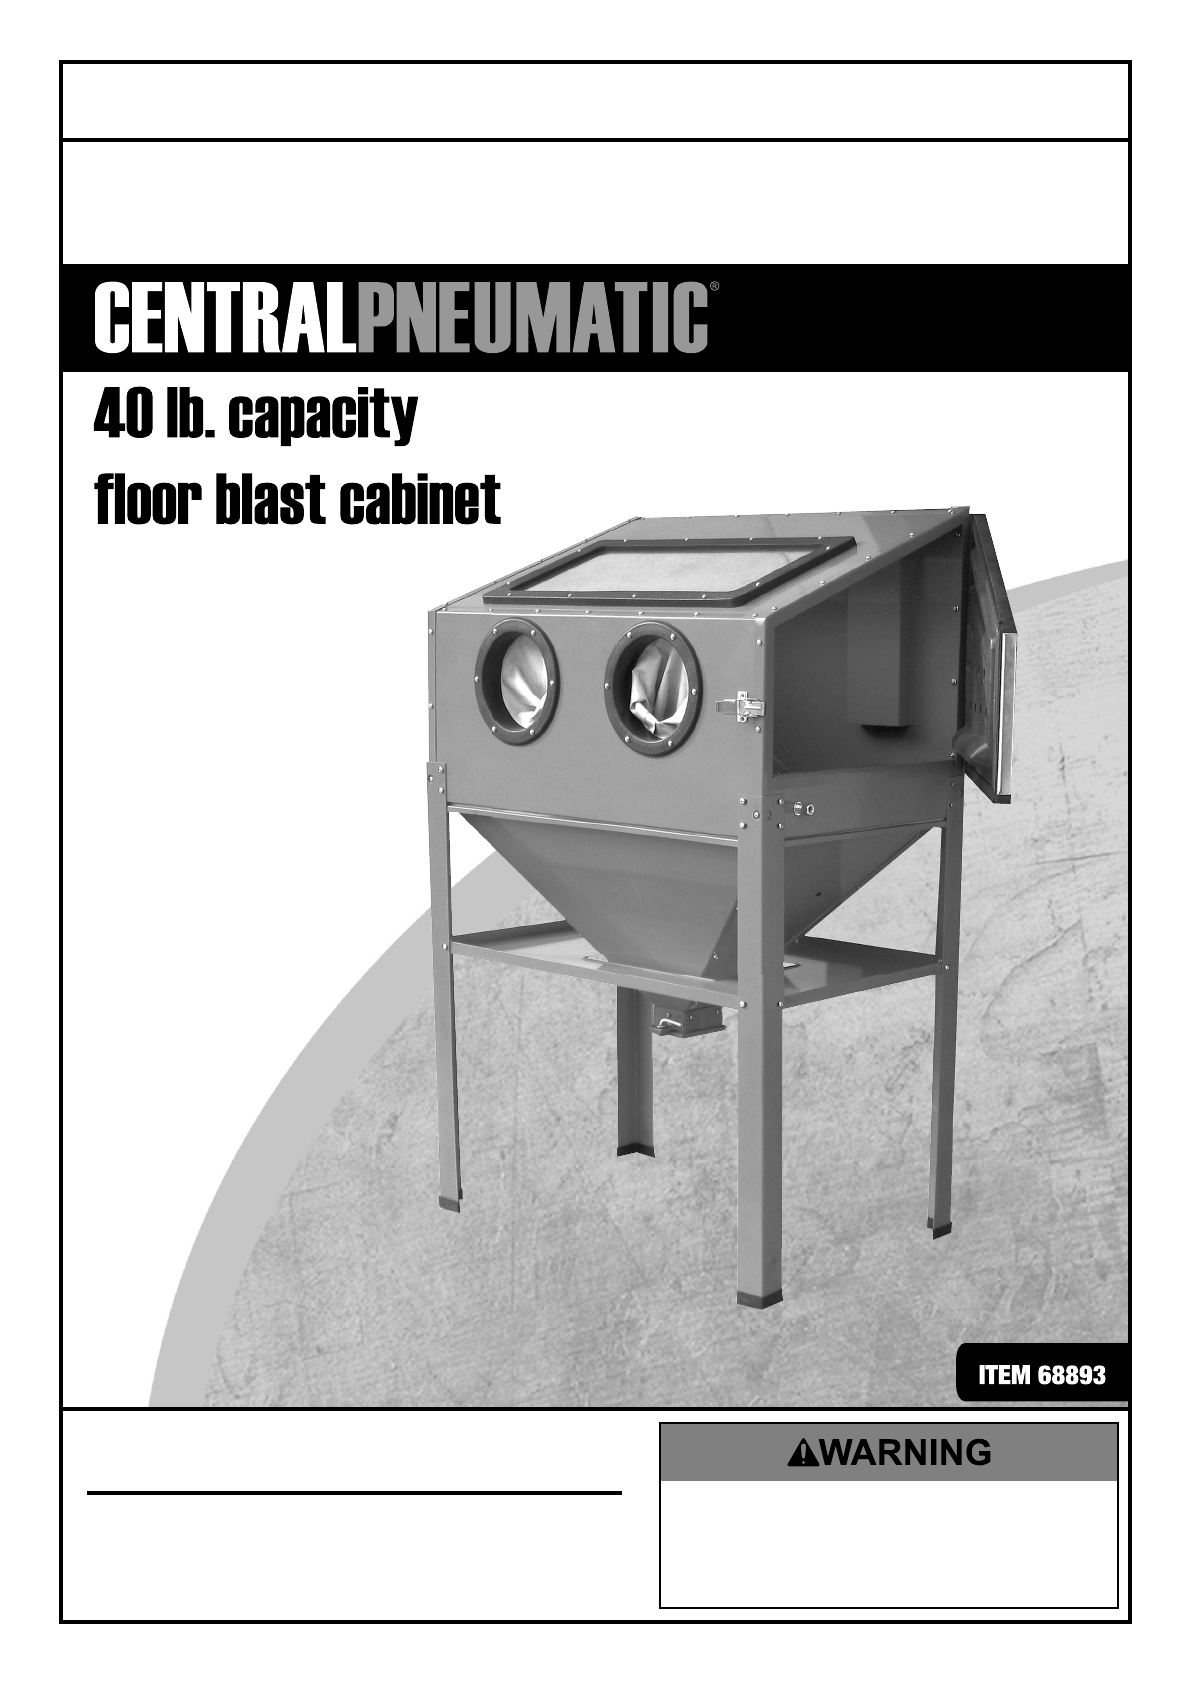 Image of: Manual For The 68893 40 Lb Capacity Floor Blast Cabinet